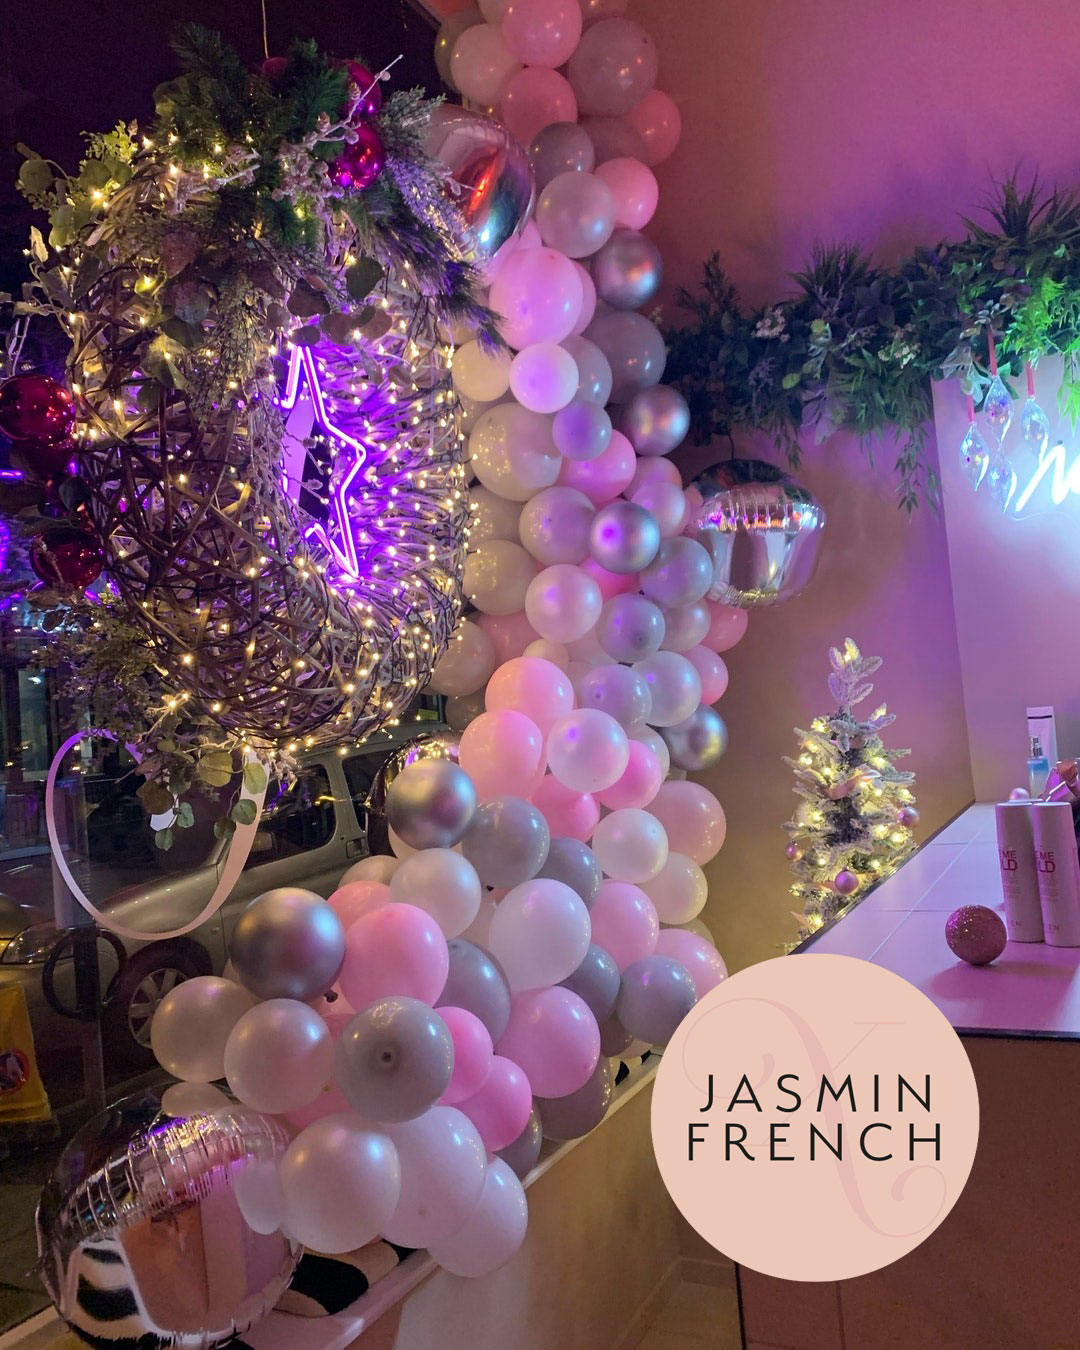 JasminFrench are 4 years old!